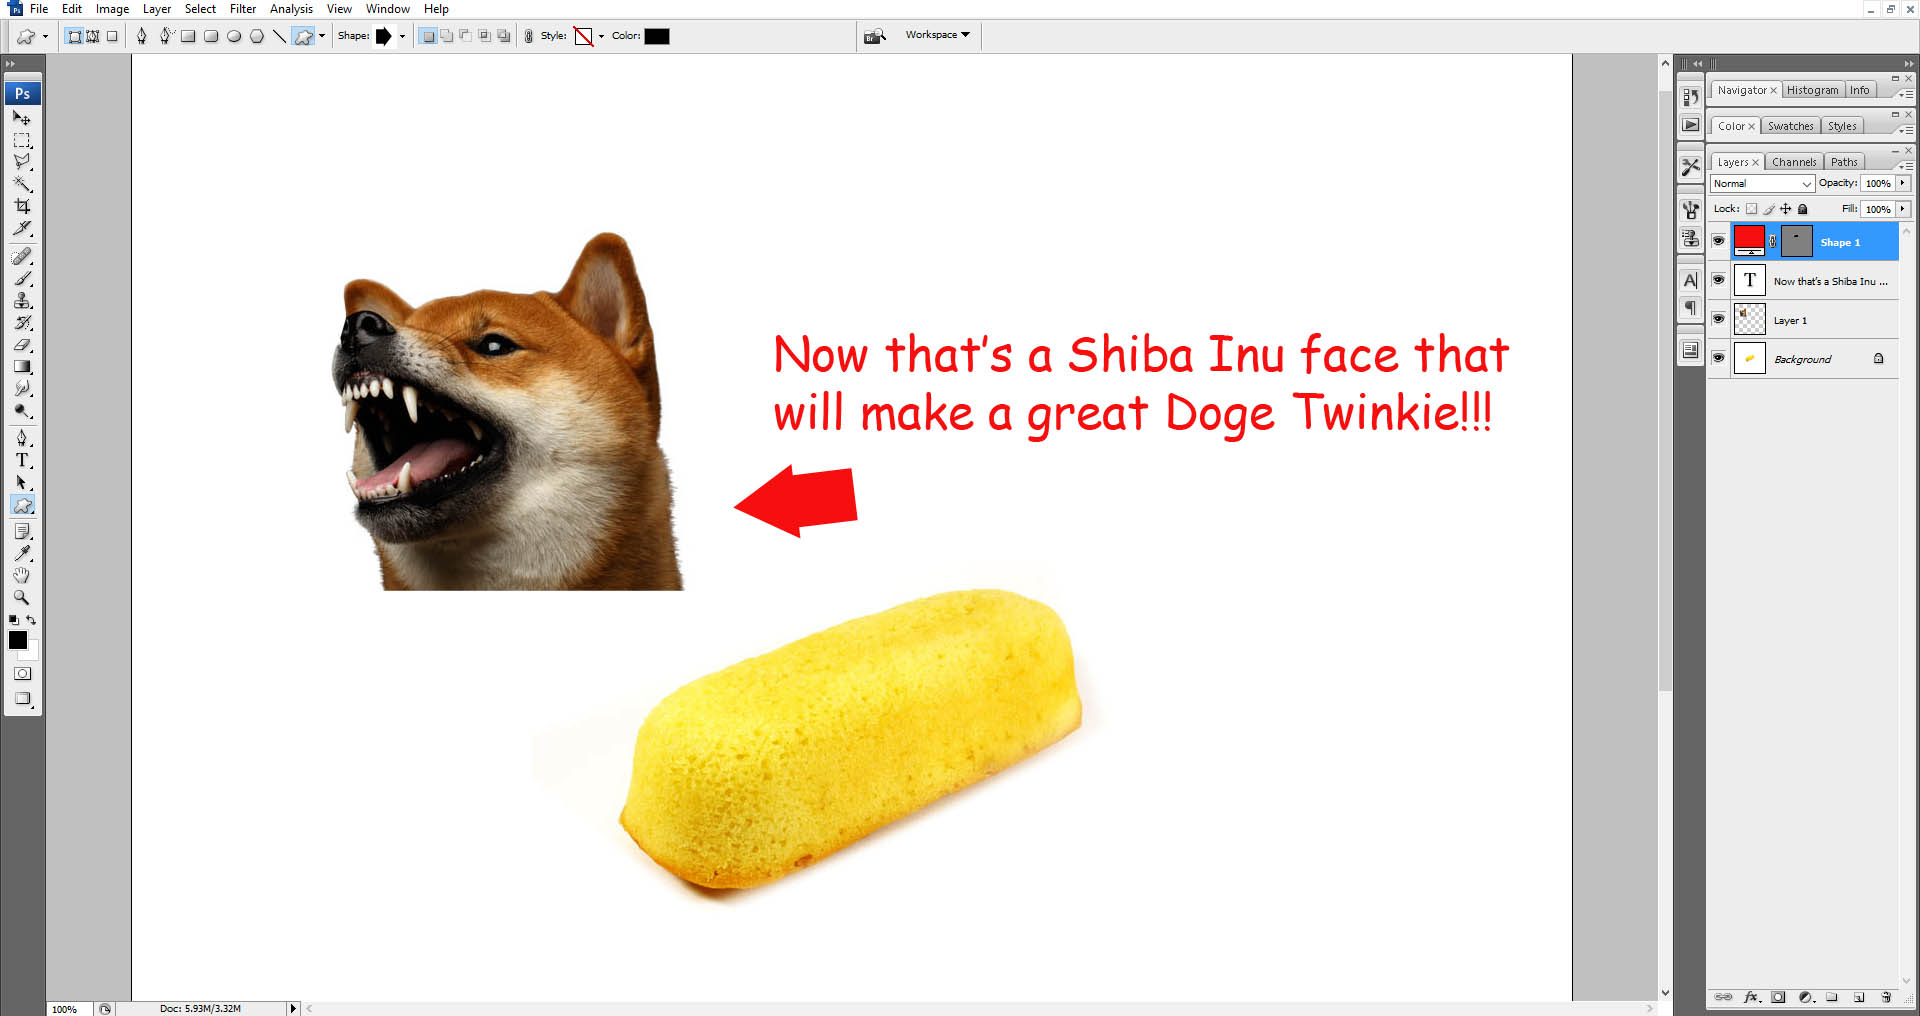 doge twinkie instructions